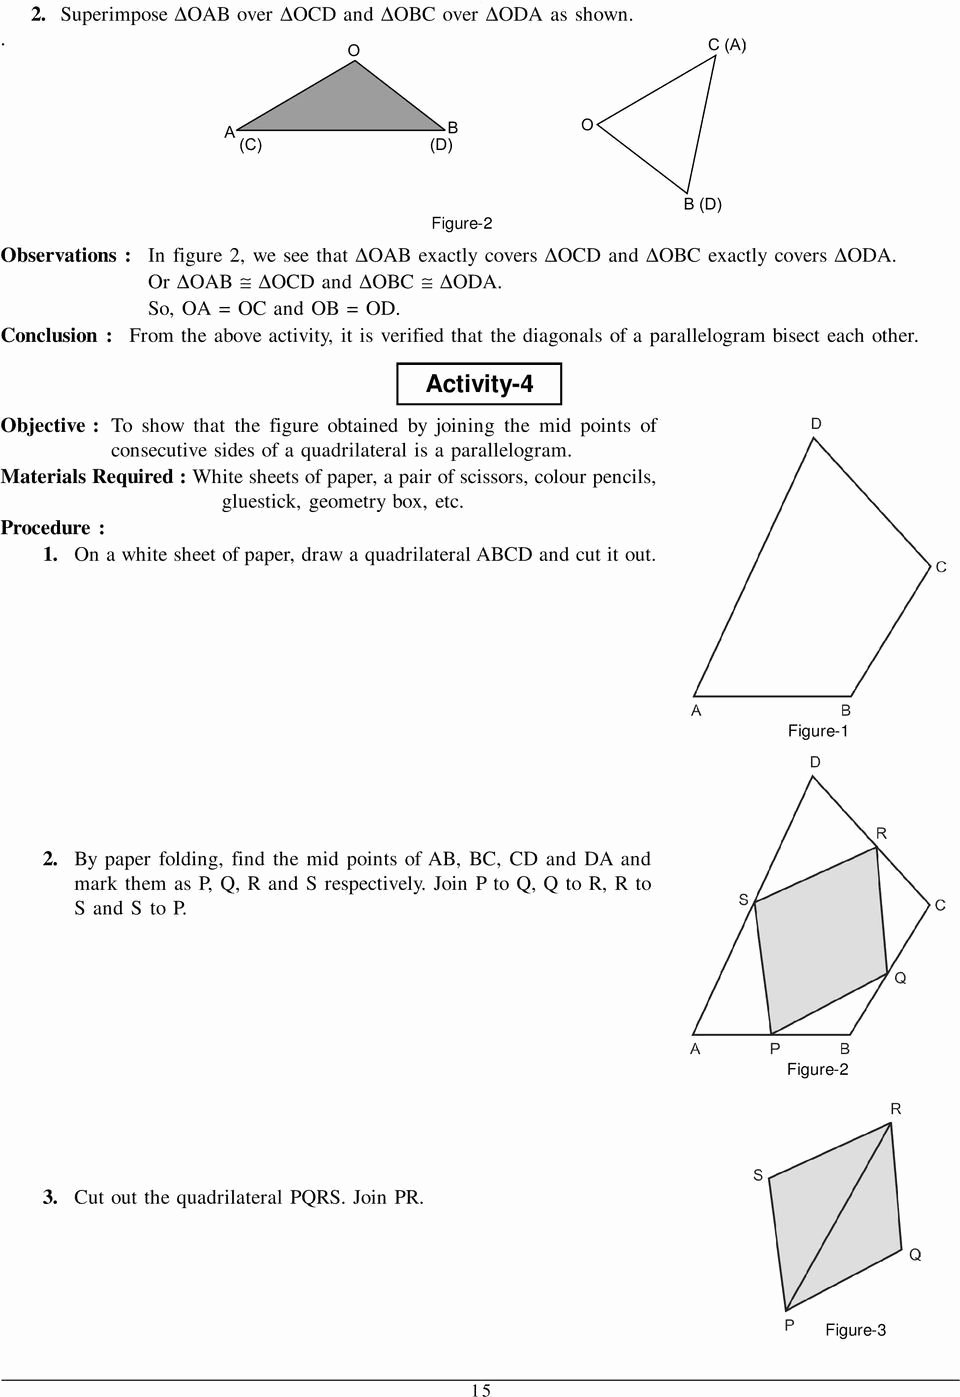 Triangle Angle Sum Worksheet Answers Awesome 4 2 Practice Angles Triangles Worksheet Answers